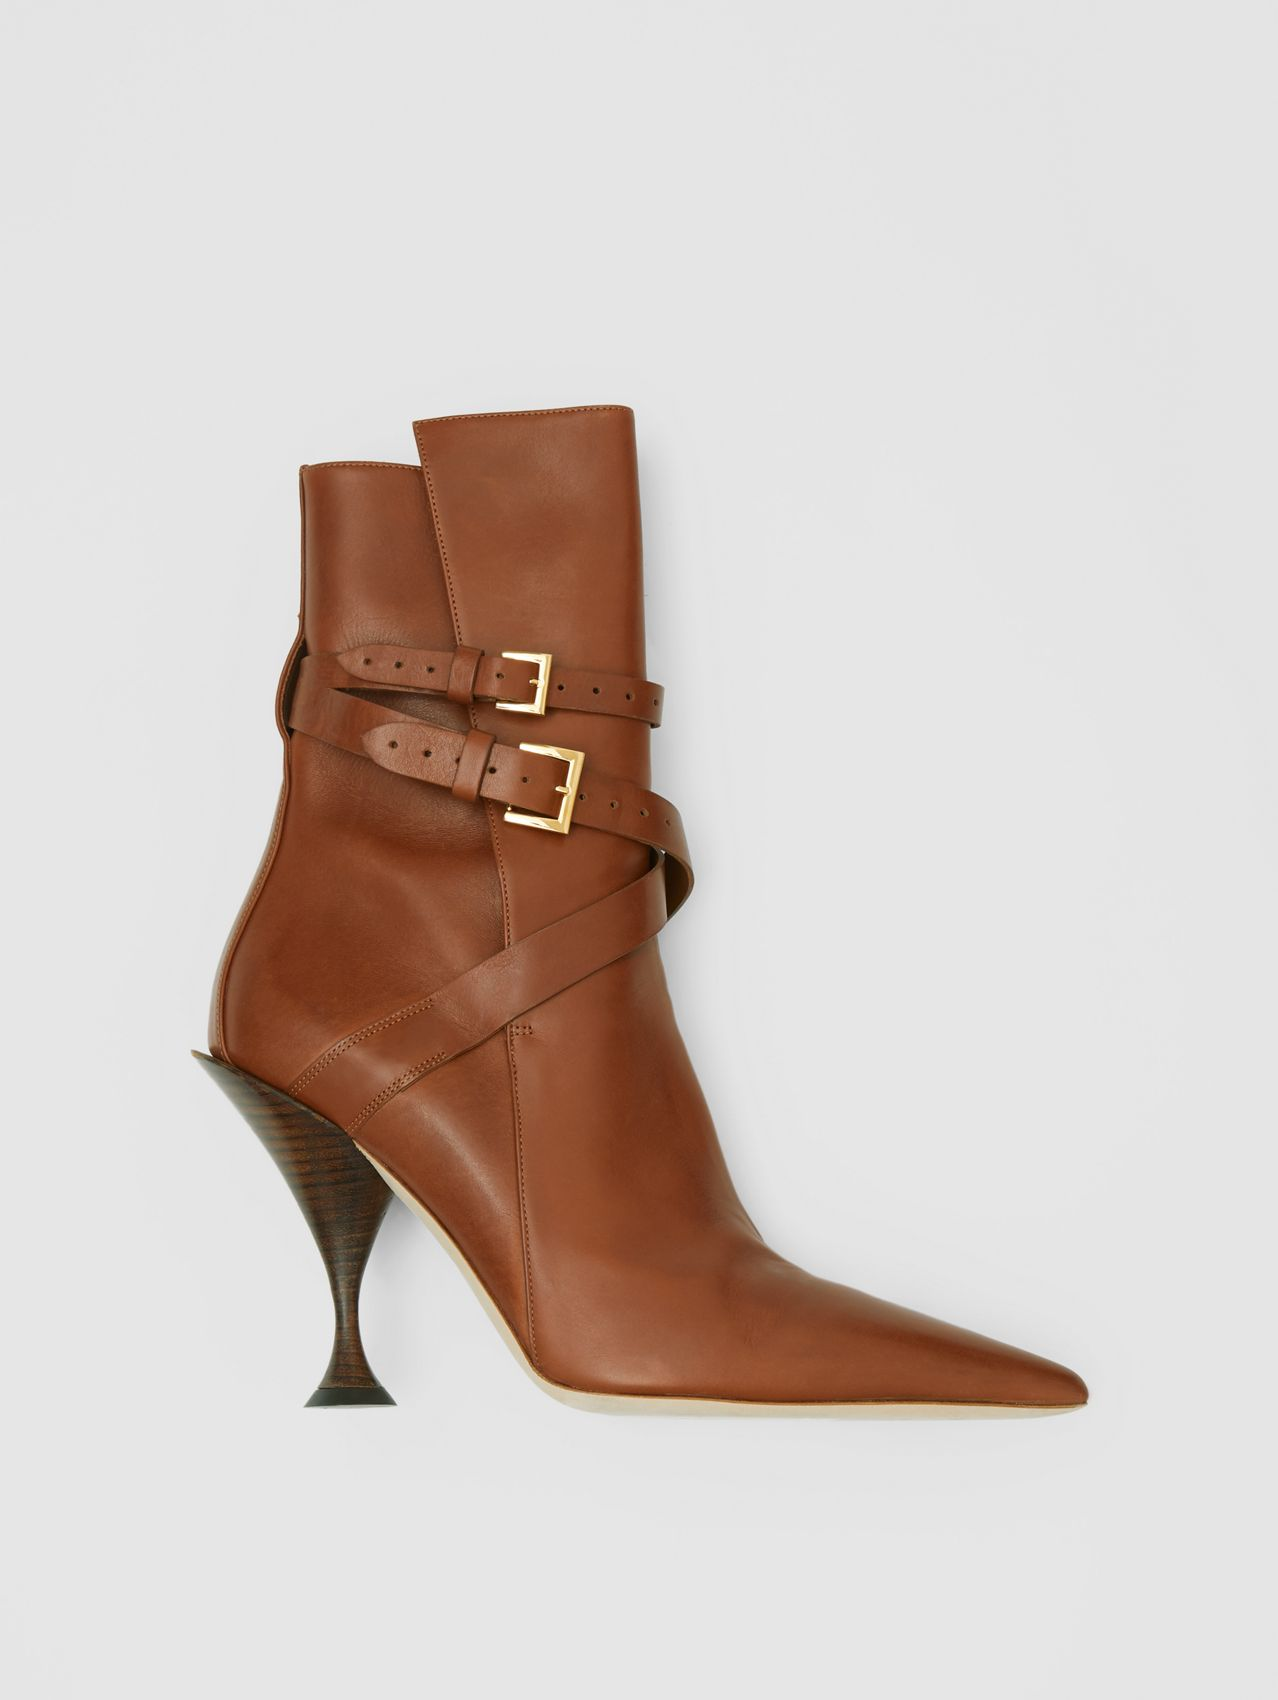 Strap Detail Leather Ankle Boots (Tan)